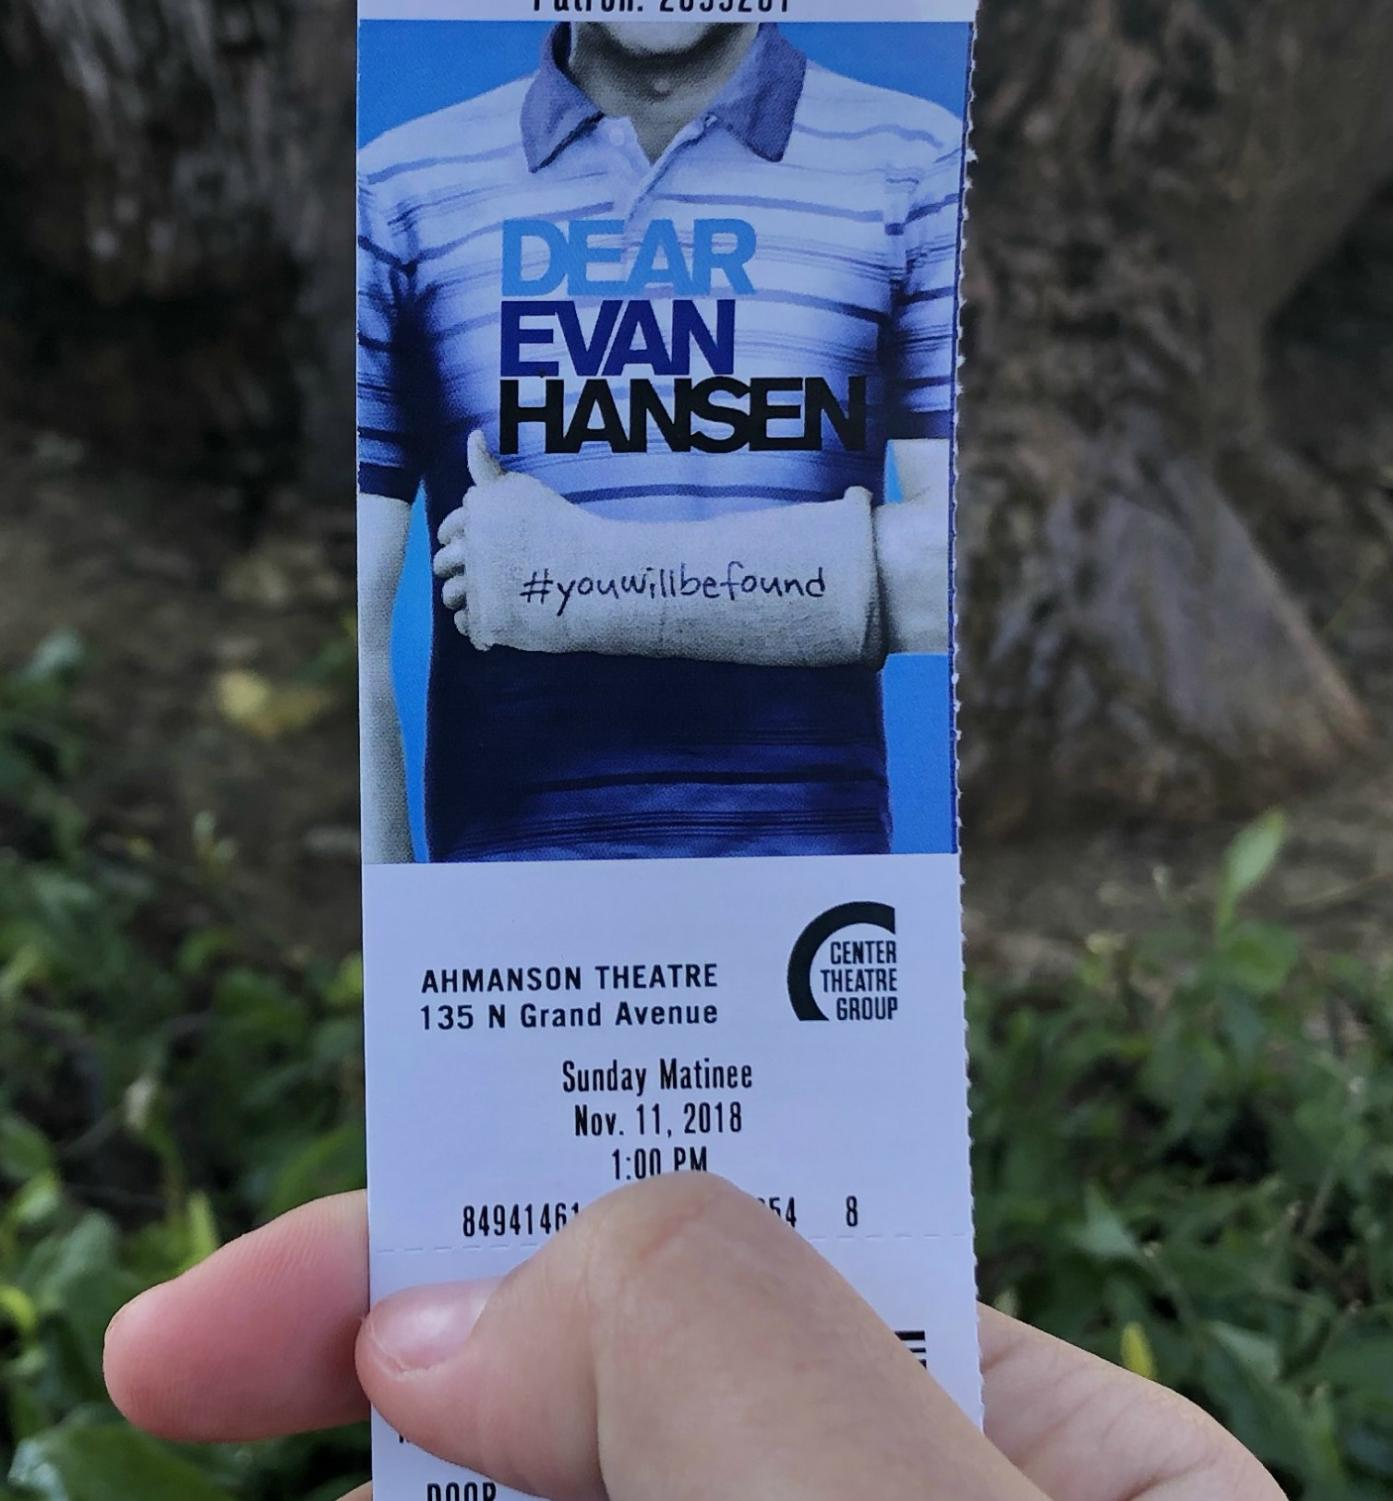 A ticket from the Dear Evan Hansen musical at the Ahmanson Theatre in Los Angeles